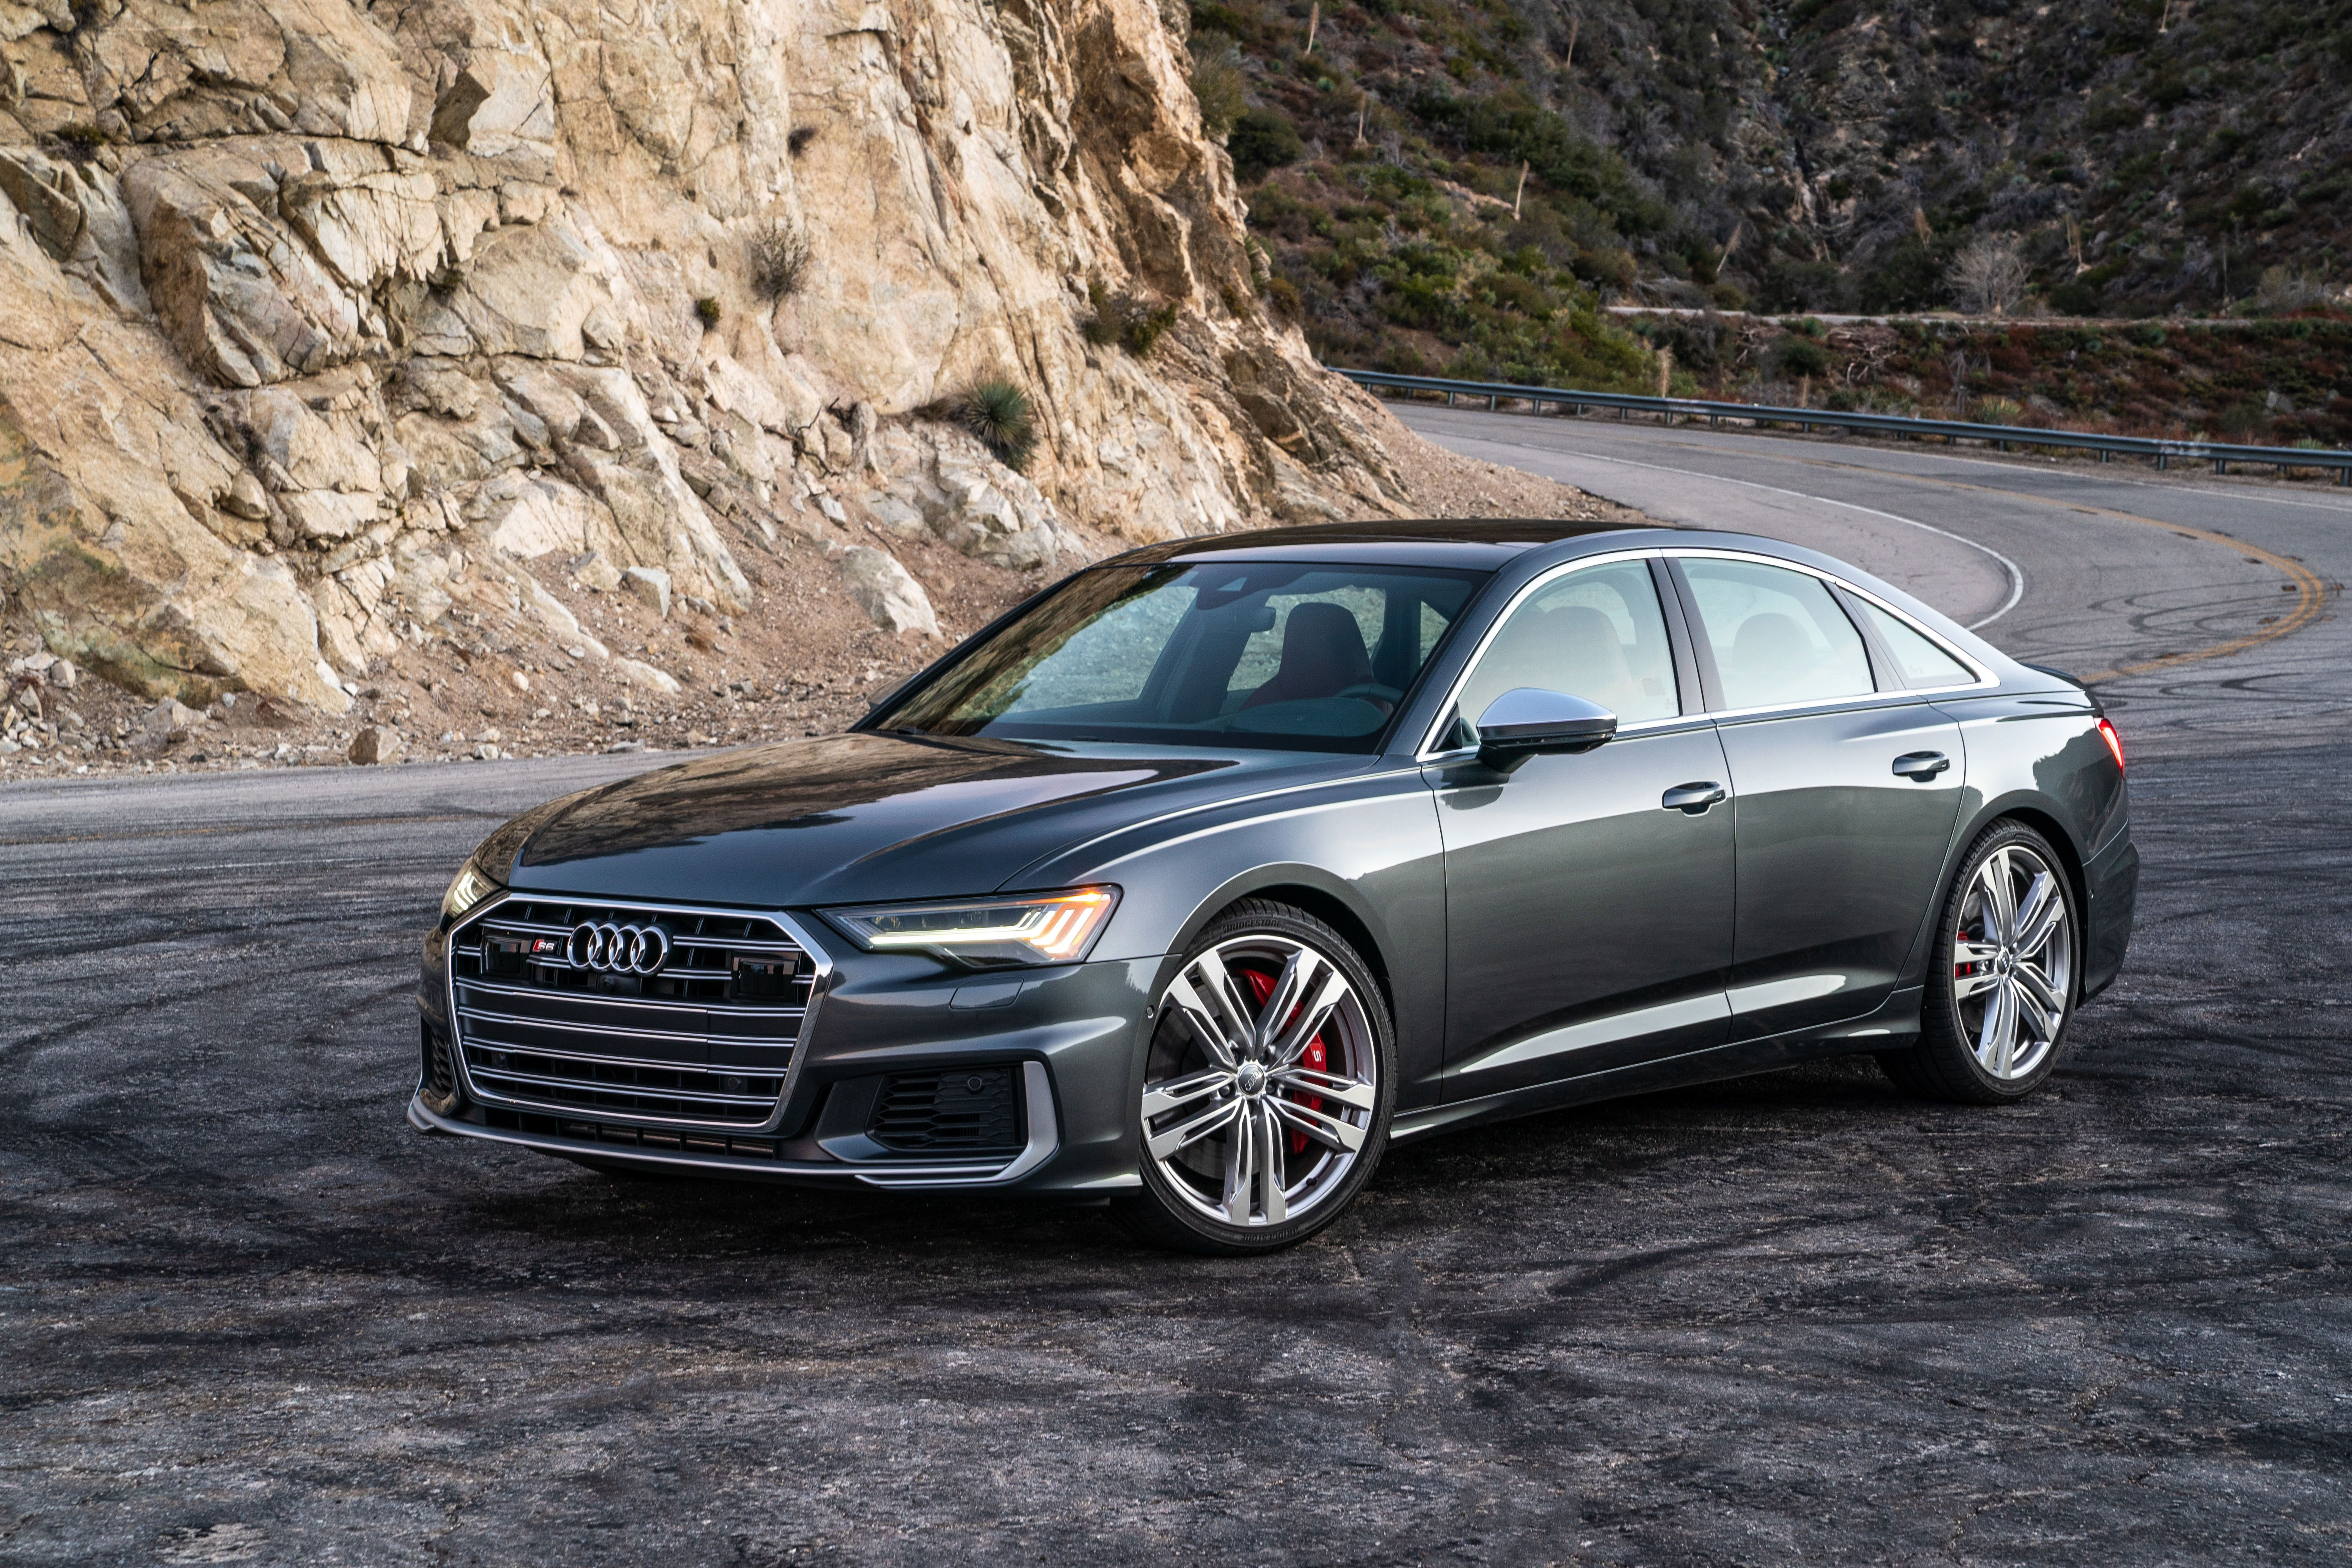 2020 Audi S6 Speed Test